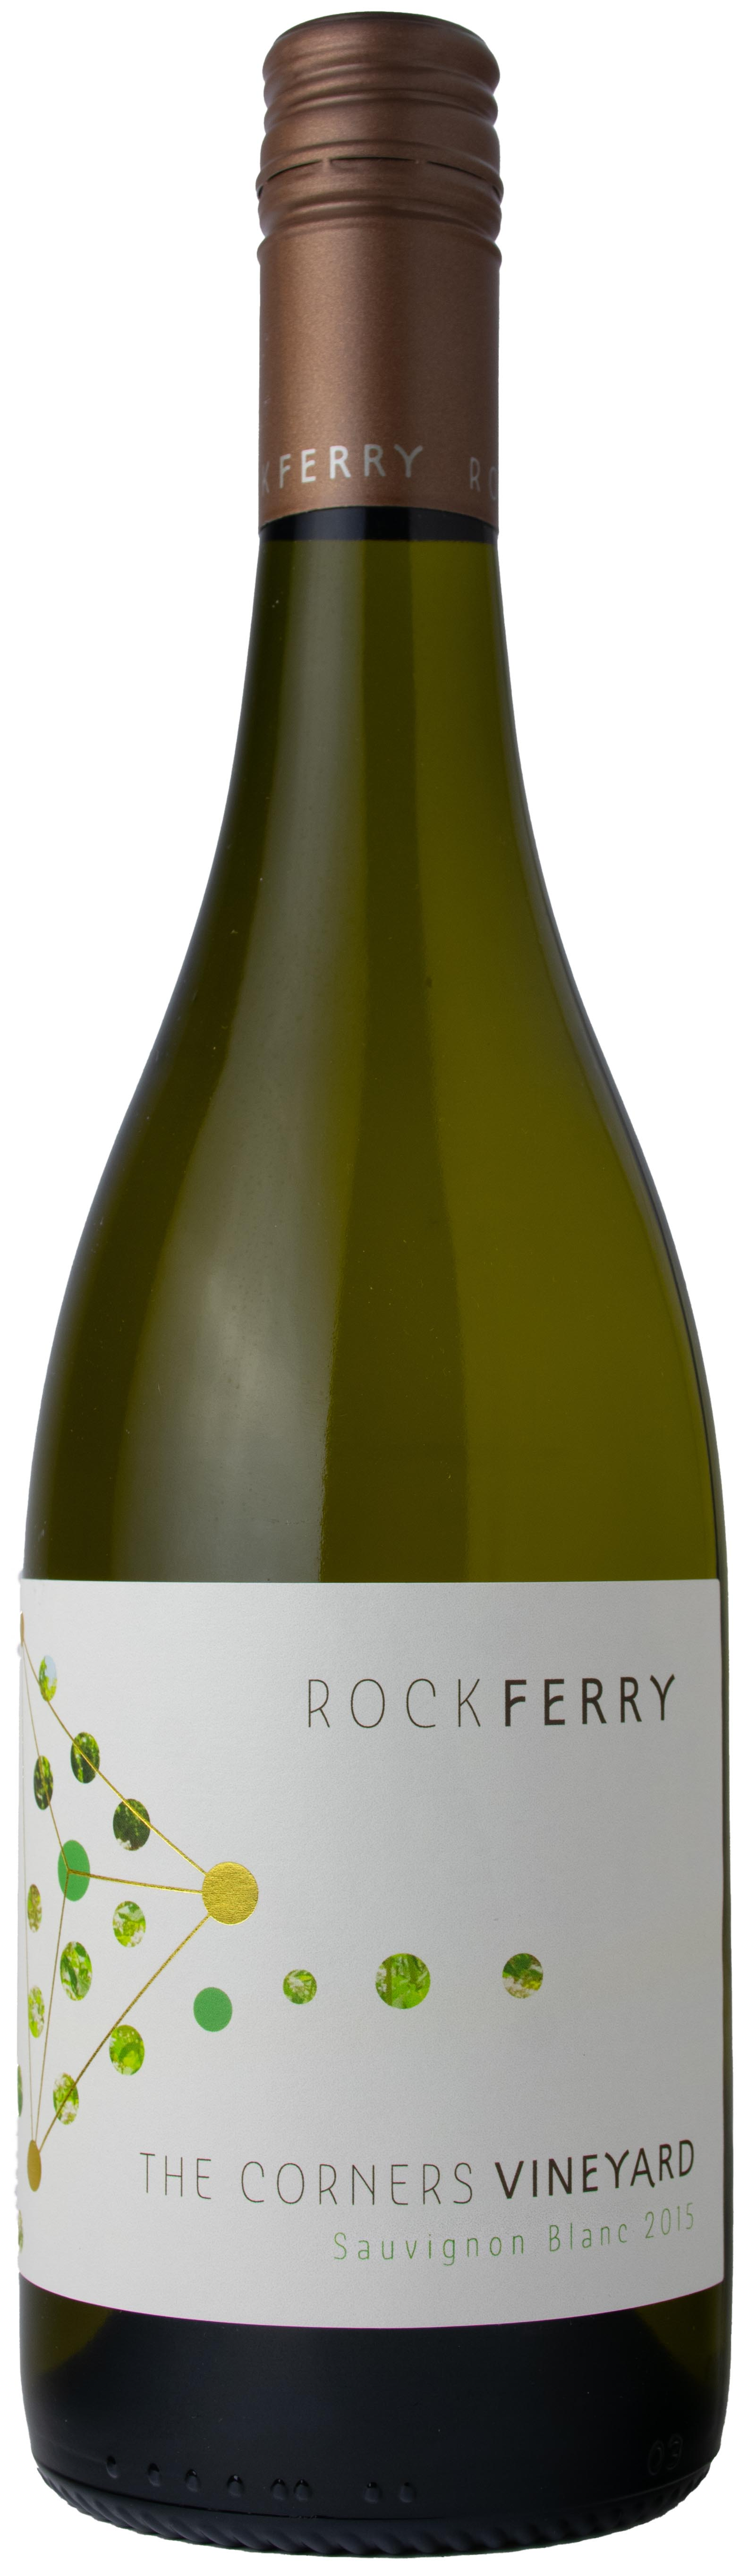 New release. Complex aromas of stone fruit, beeswax, and loquat leads to the rich layered palate with refreshing finish.